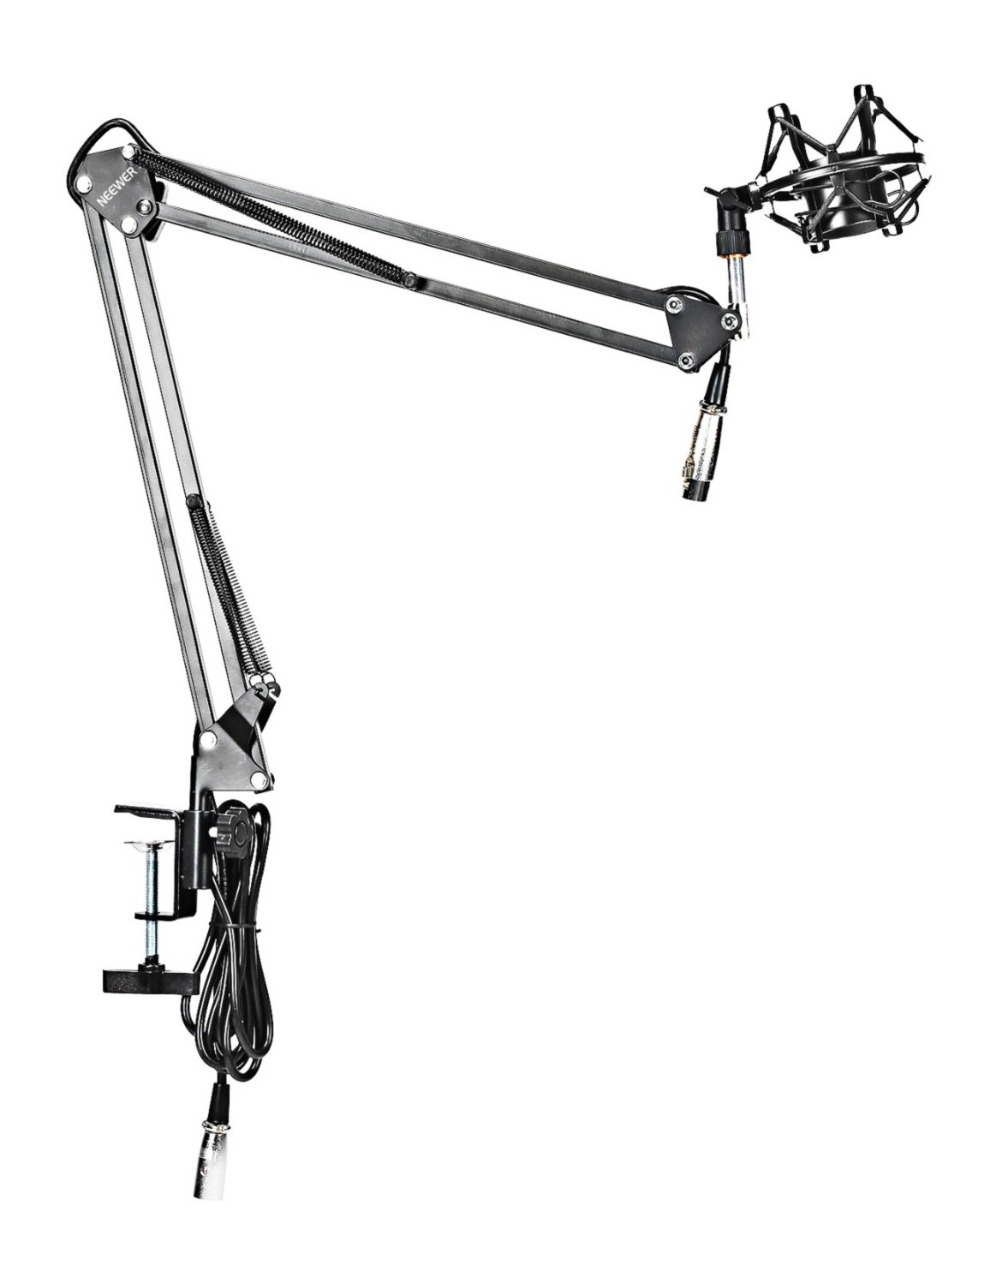 Neewer NW-35 Suspension Boom Scissor Arm Stand with Built-in XLR Male to Female Cable, Shock Mount and Table Mounting Clamp(China (Mainland))